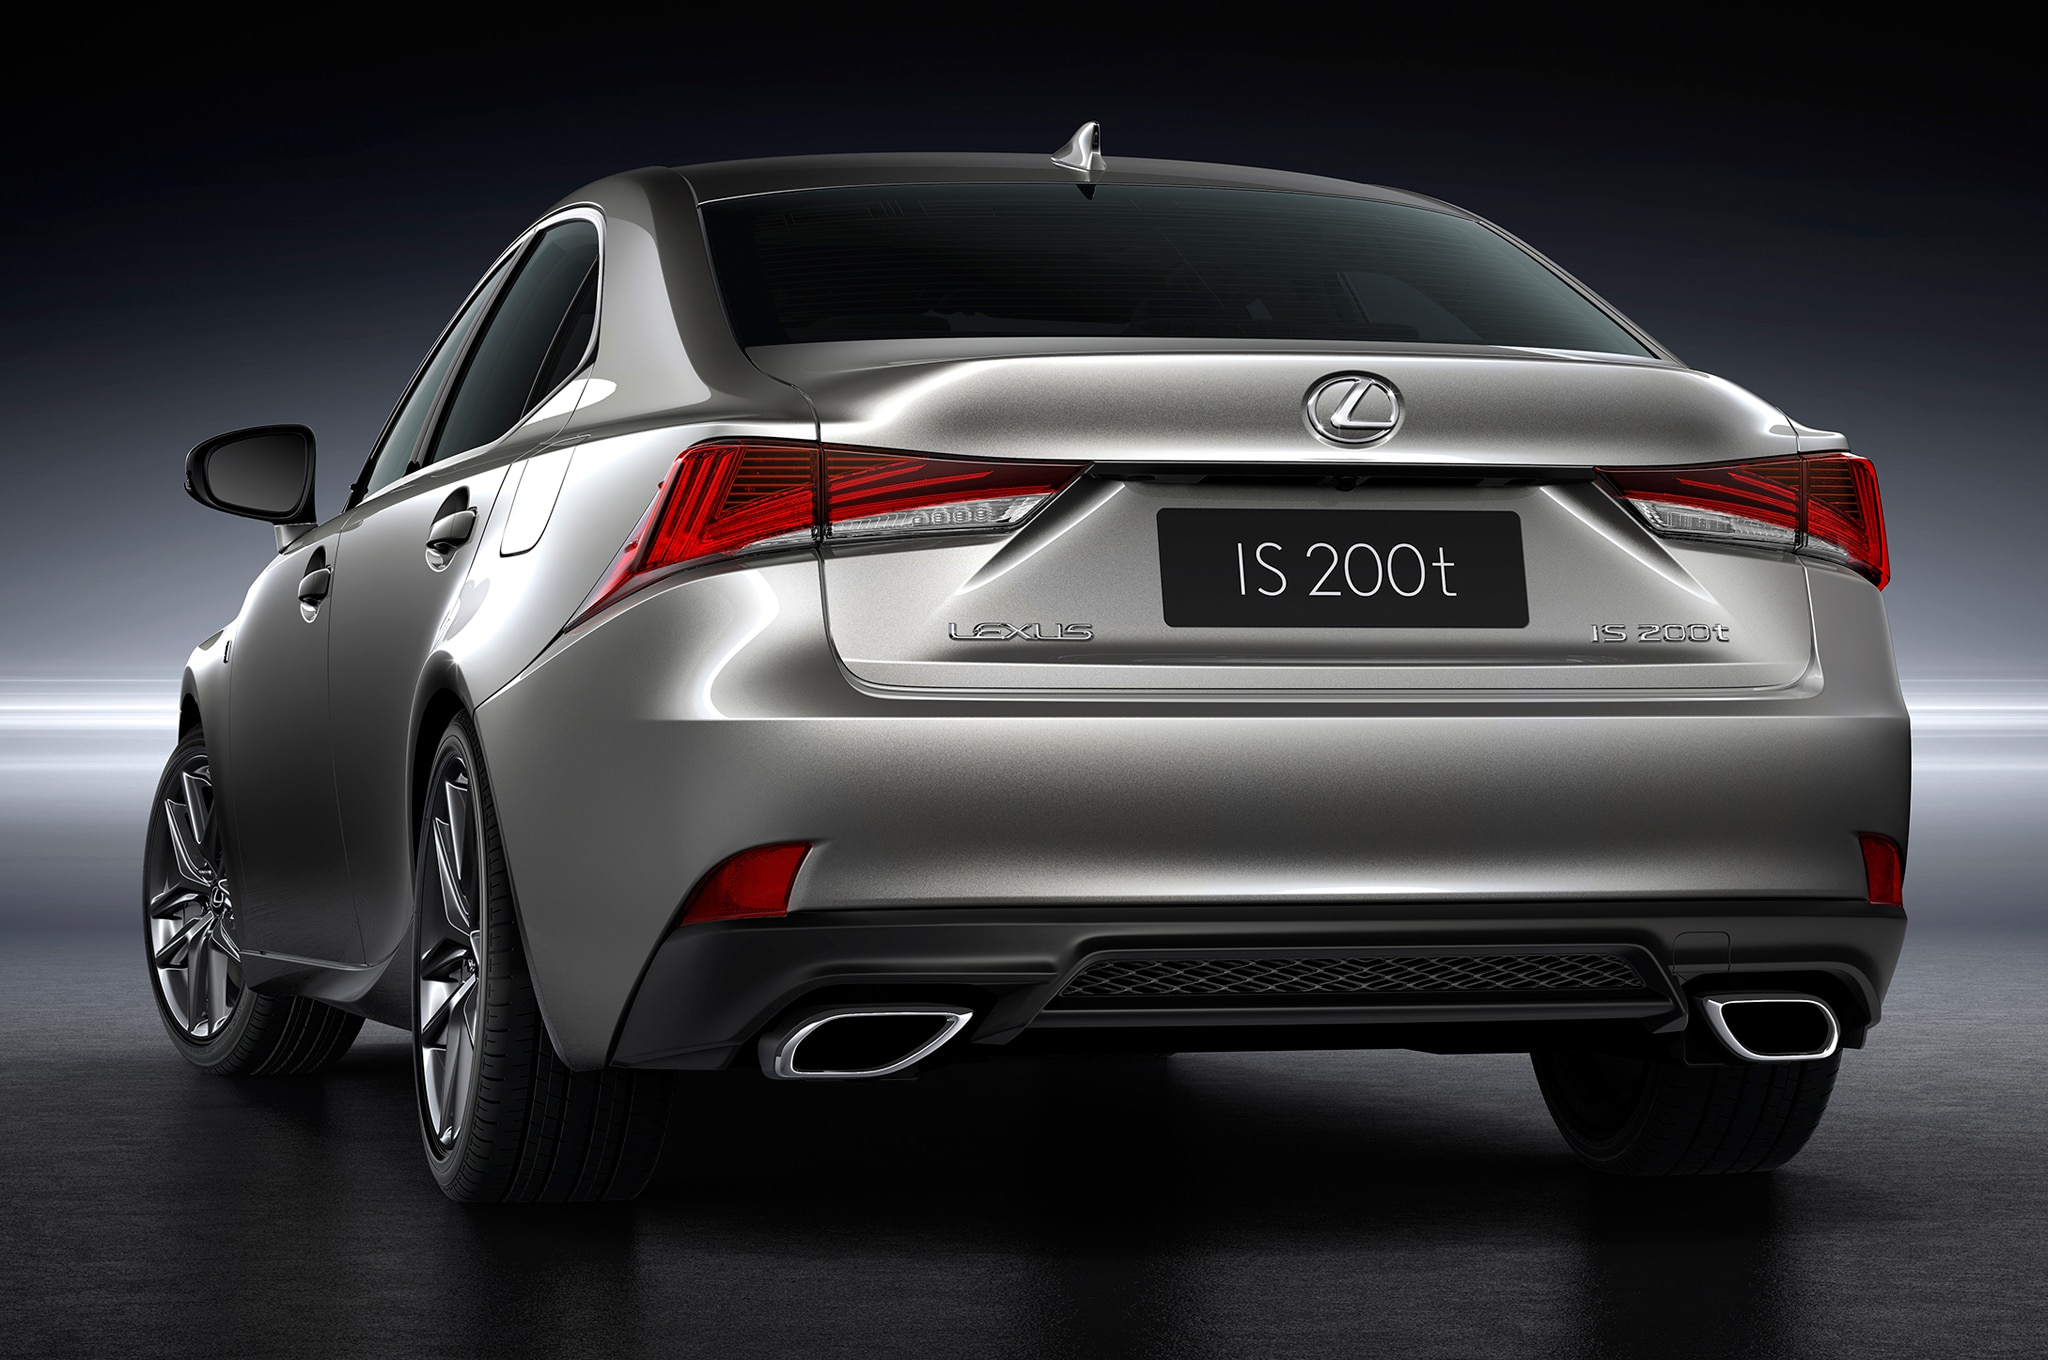 http://st.automobilemag.com/uploads/sites/11/2016/04/2017-Lexus-IS-Chinese-Spec-rear-end.jpg